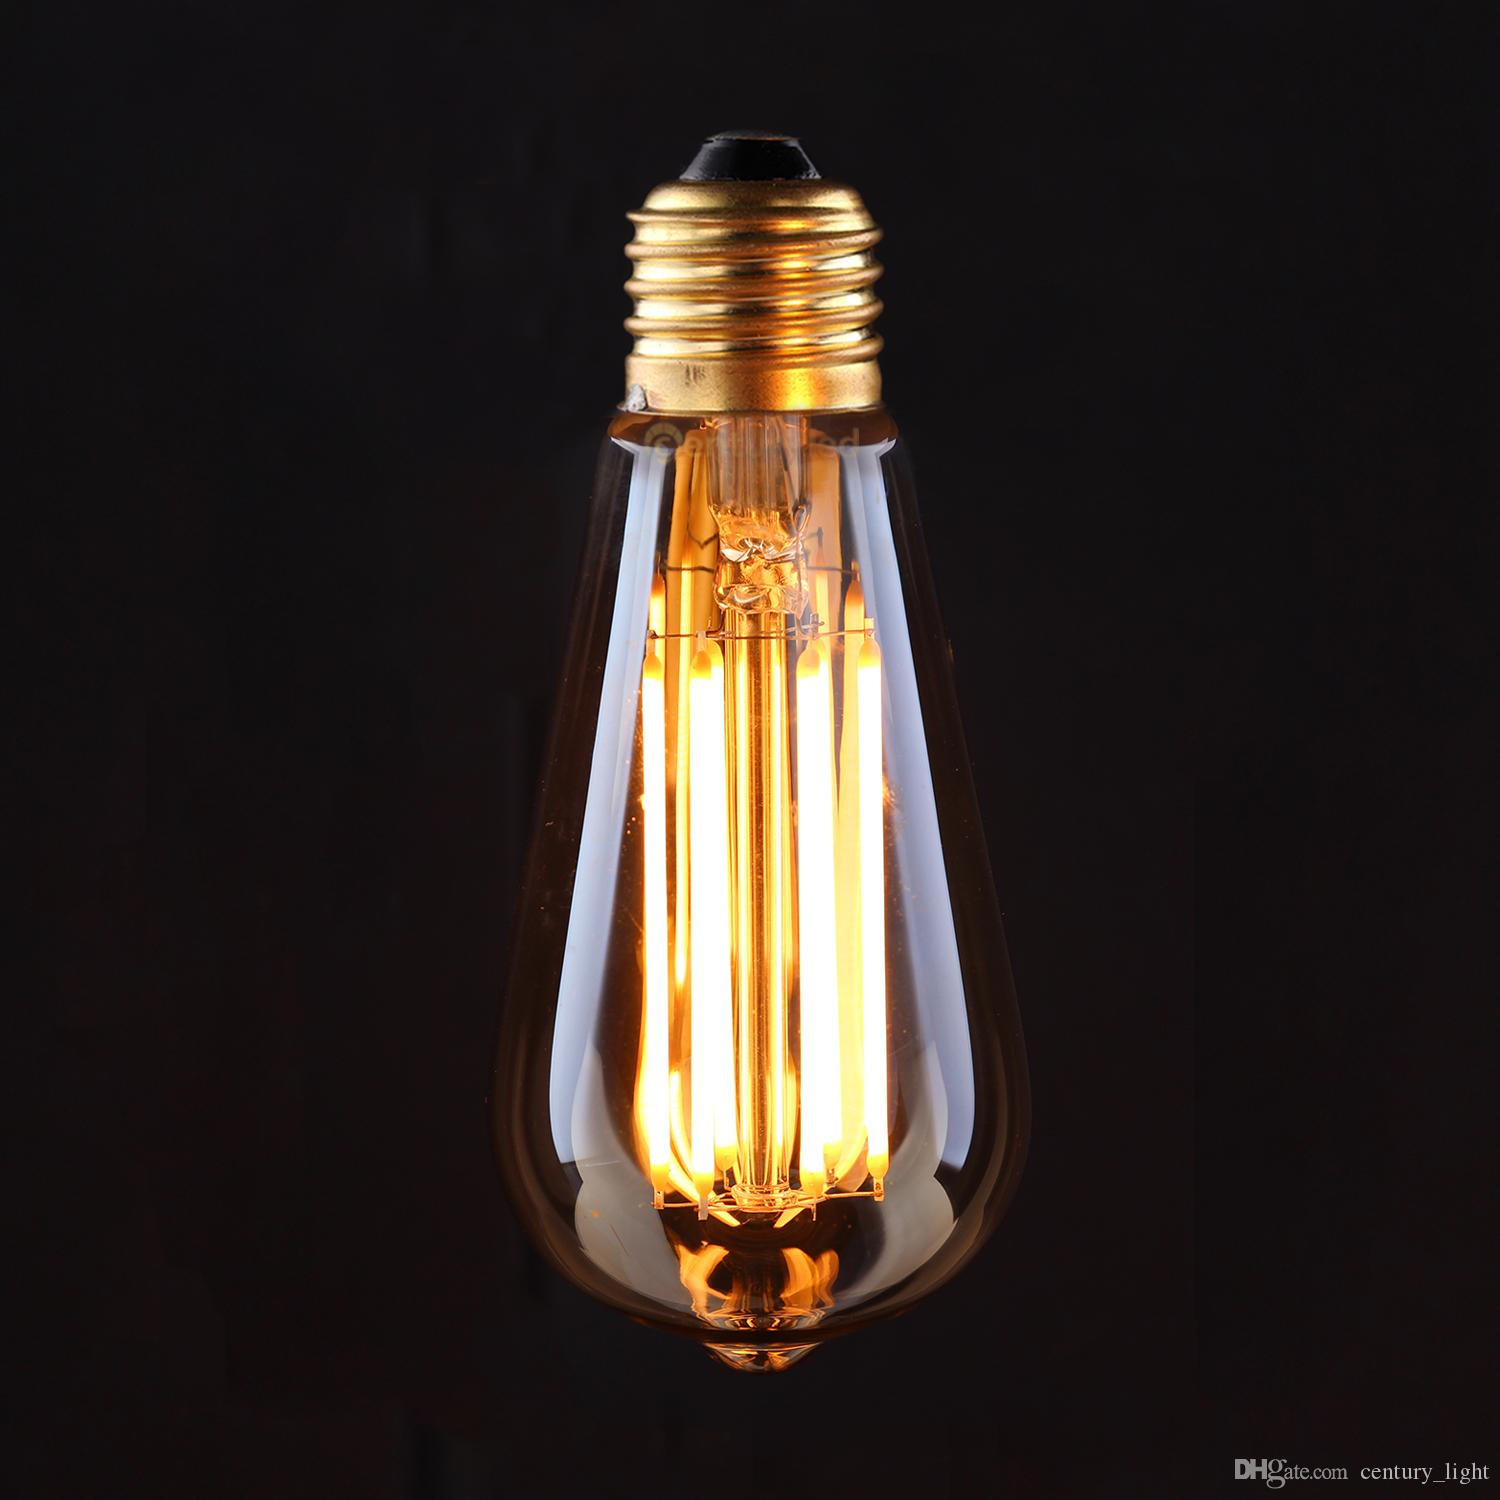 lighting light edison style watt lightbulb bulbs vintage bulb